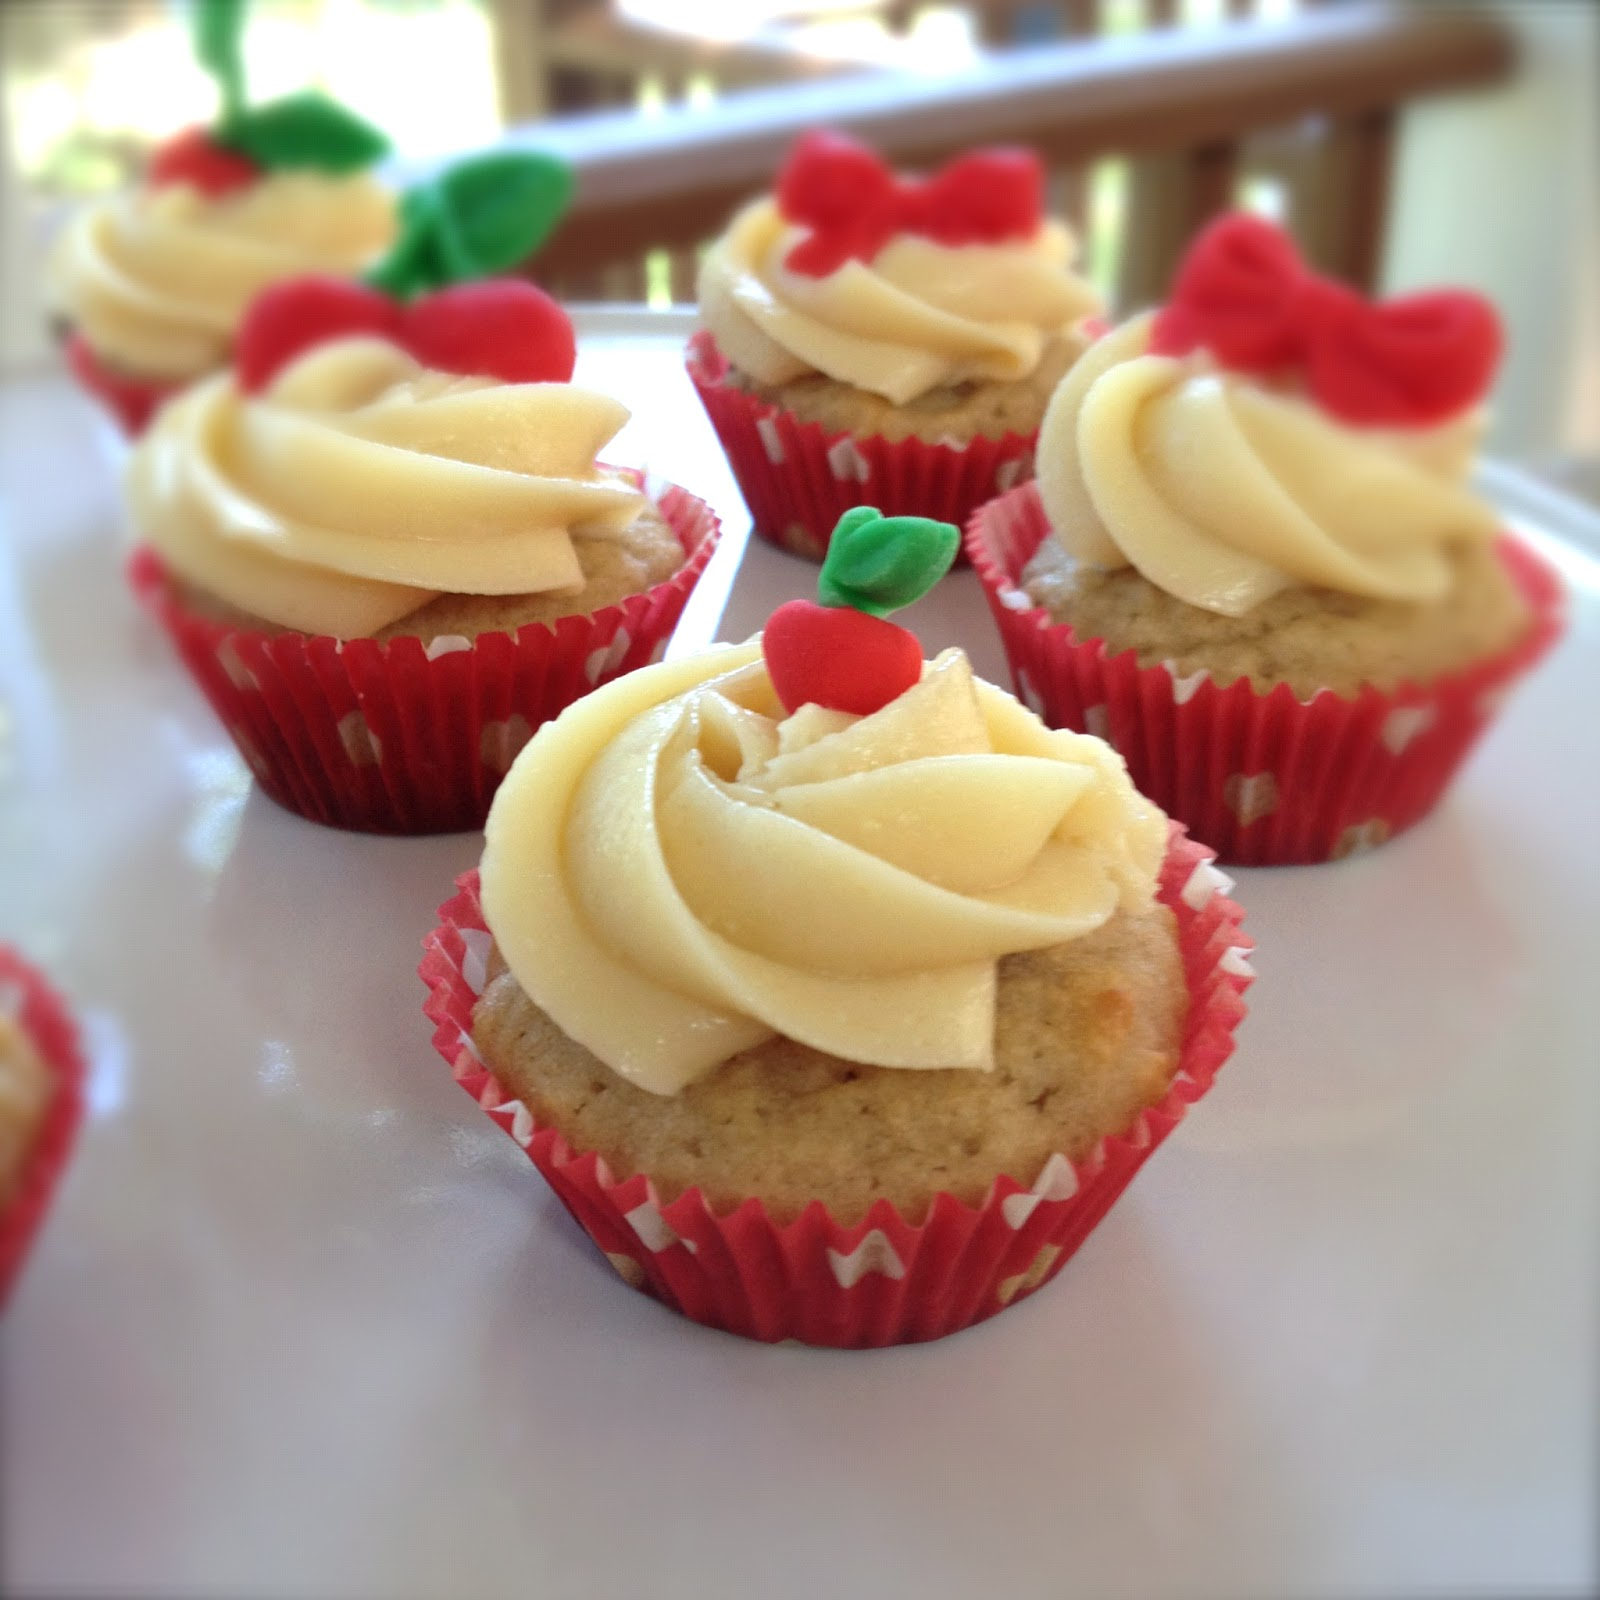 Evolution Of A Party...: Strawberry Cupcakes The Healthy Way